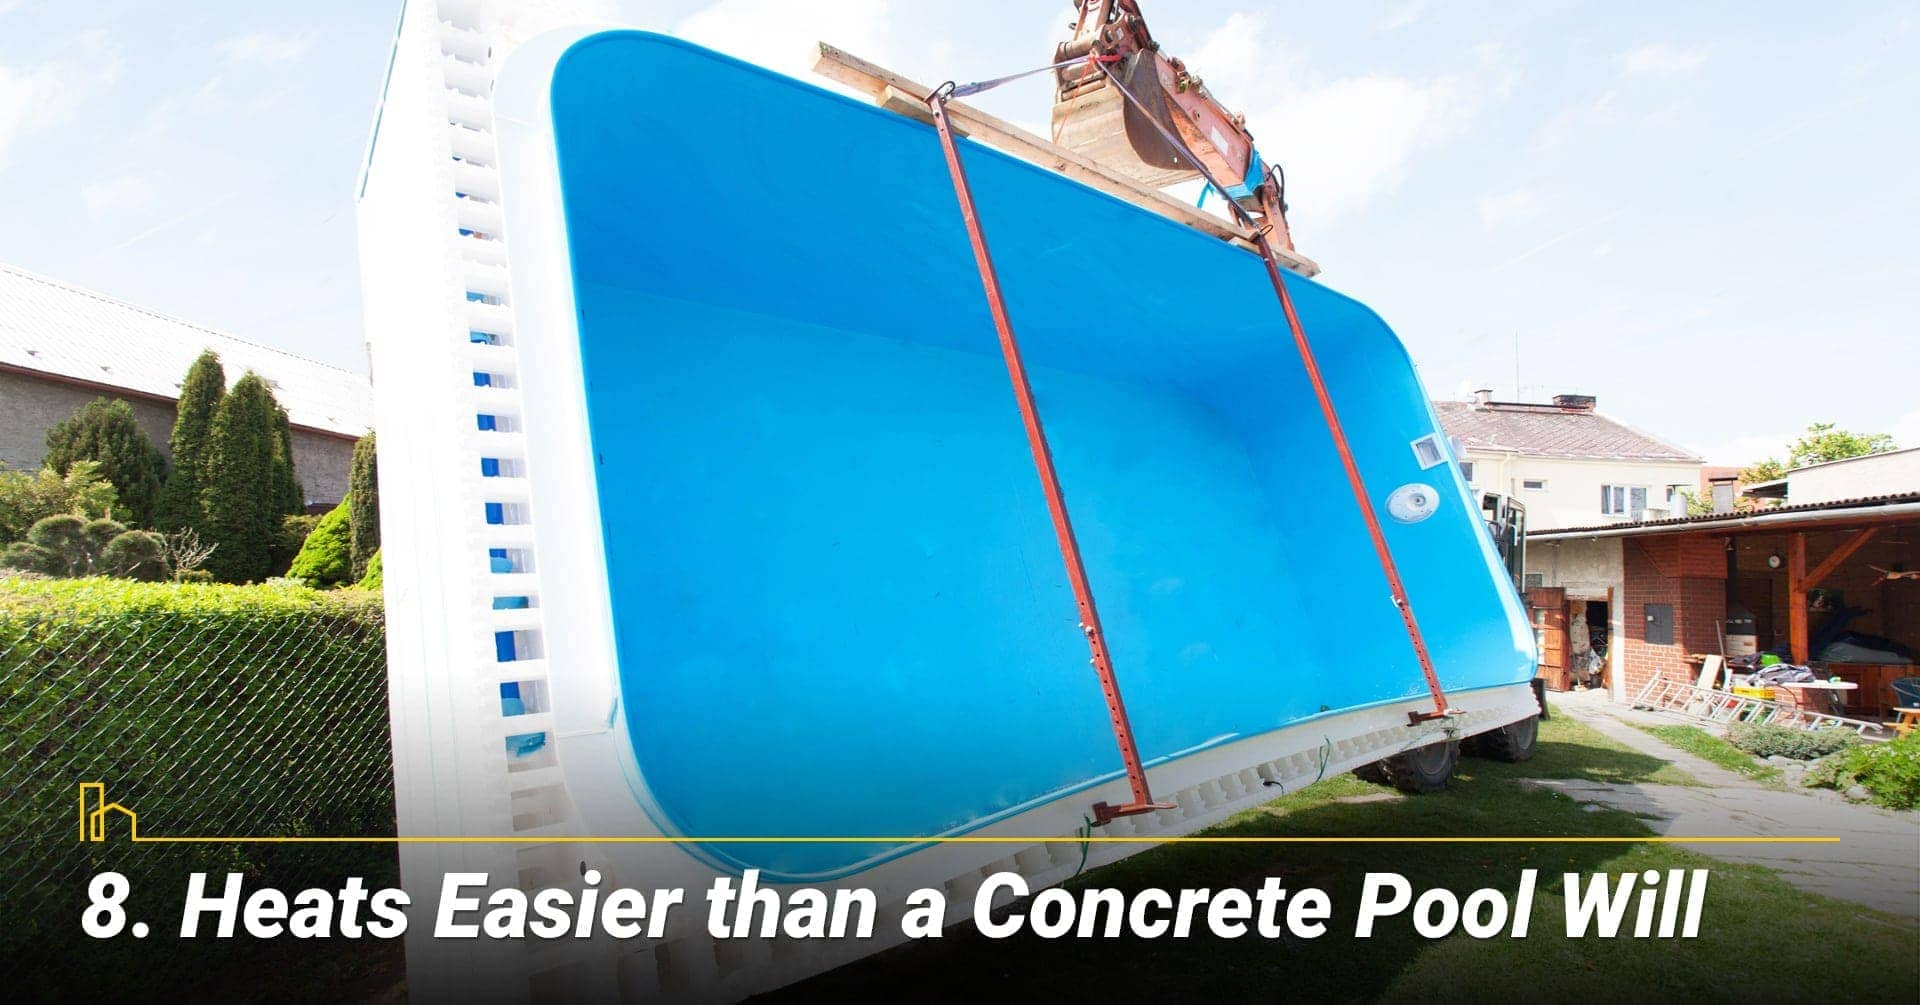 Heats Easier than a Concrete Pool Will, use less energy to warm up the pool